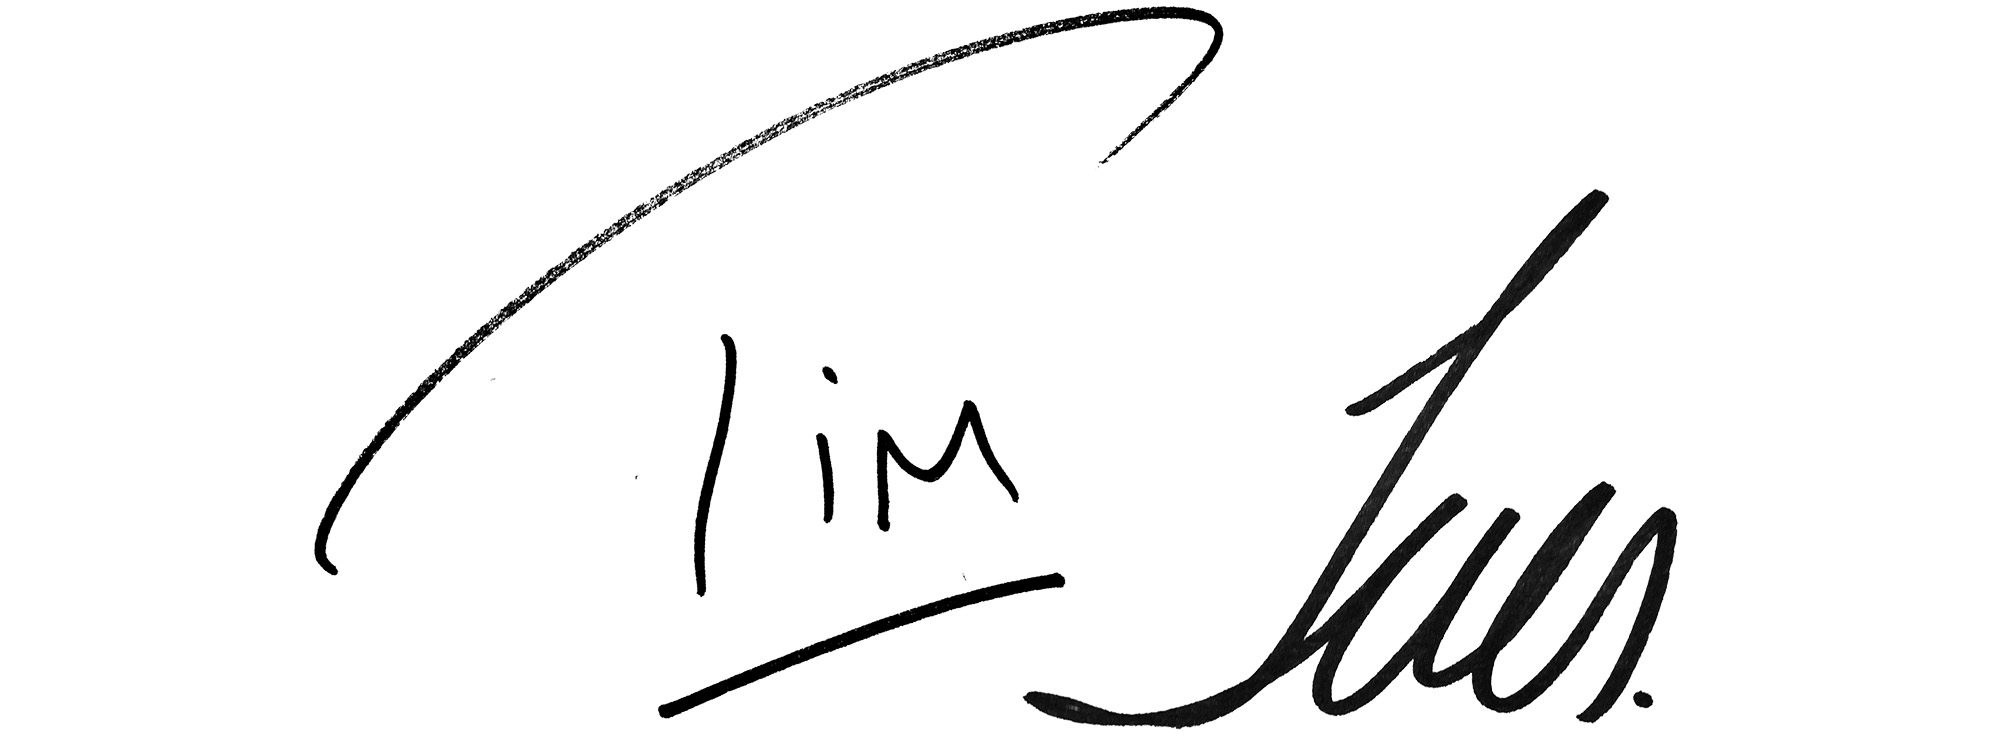 signatures-joint copy-space.jpg